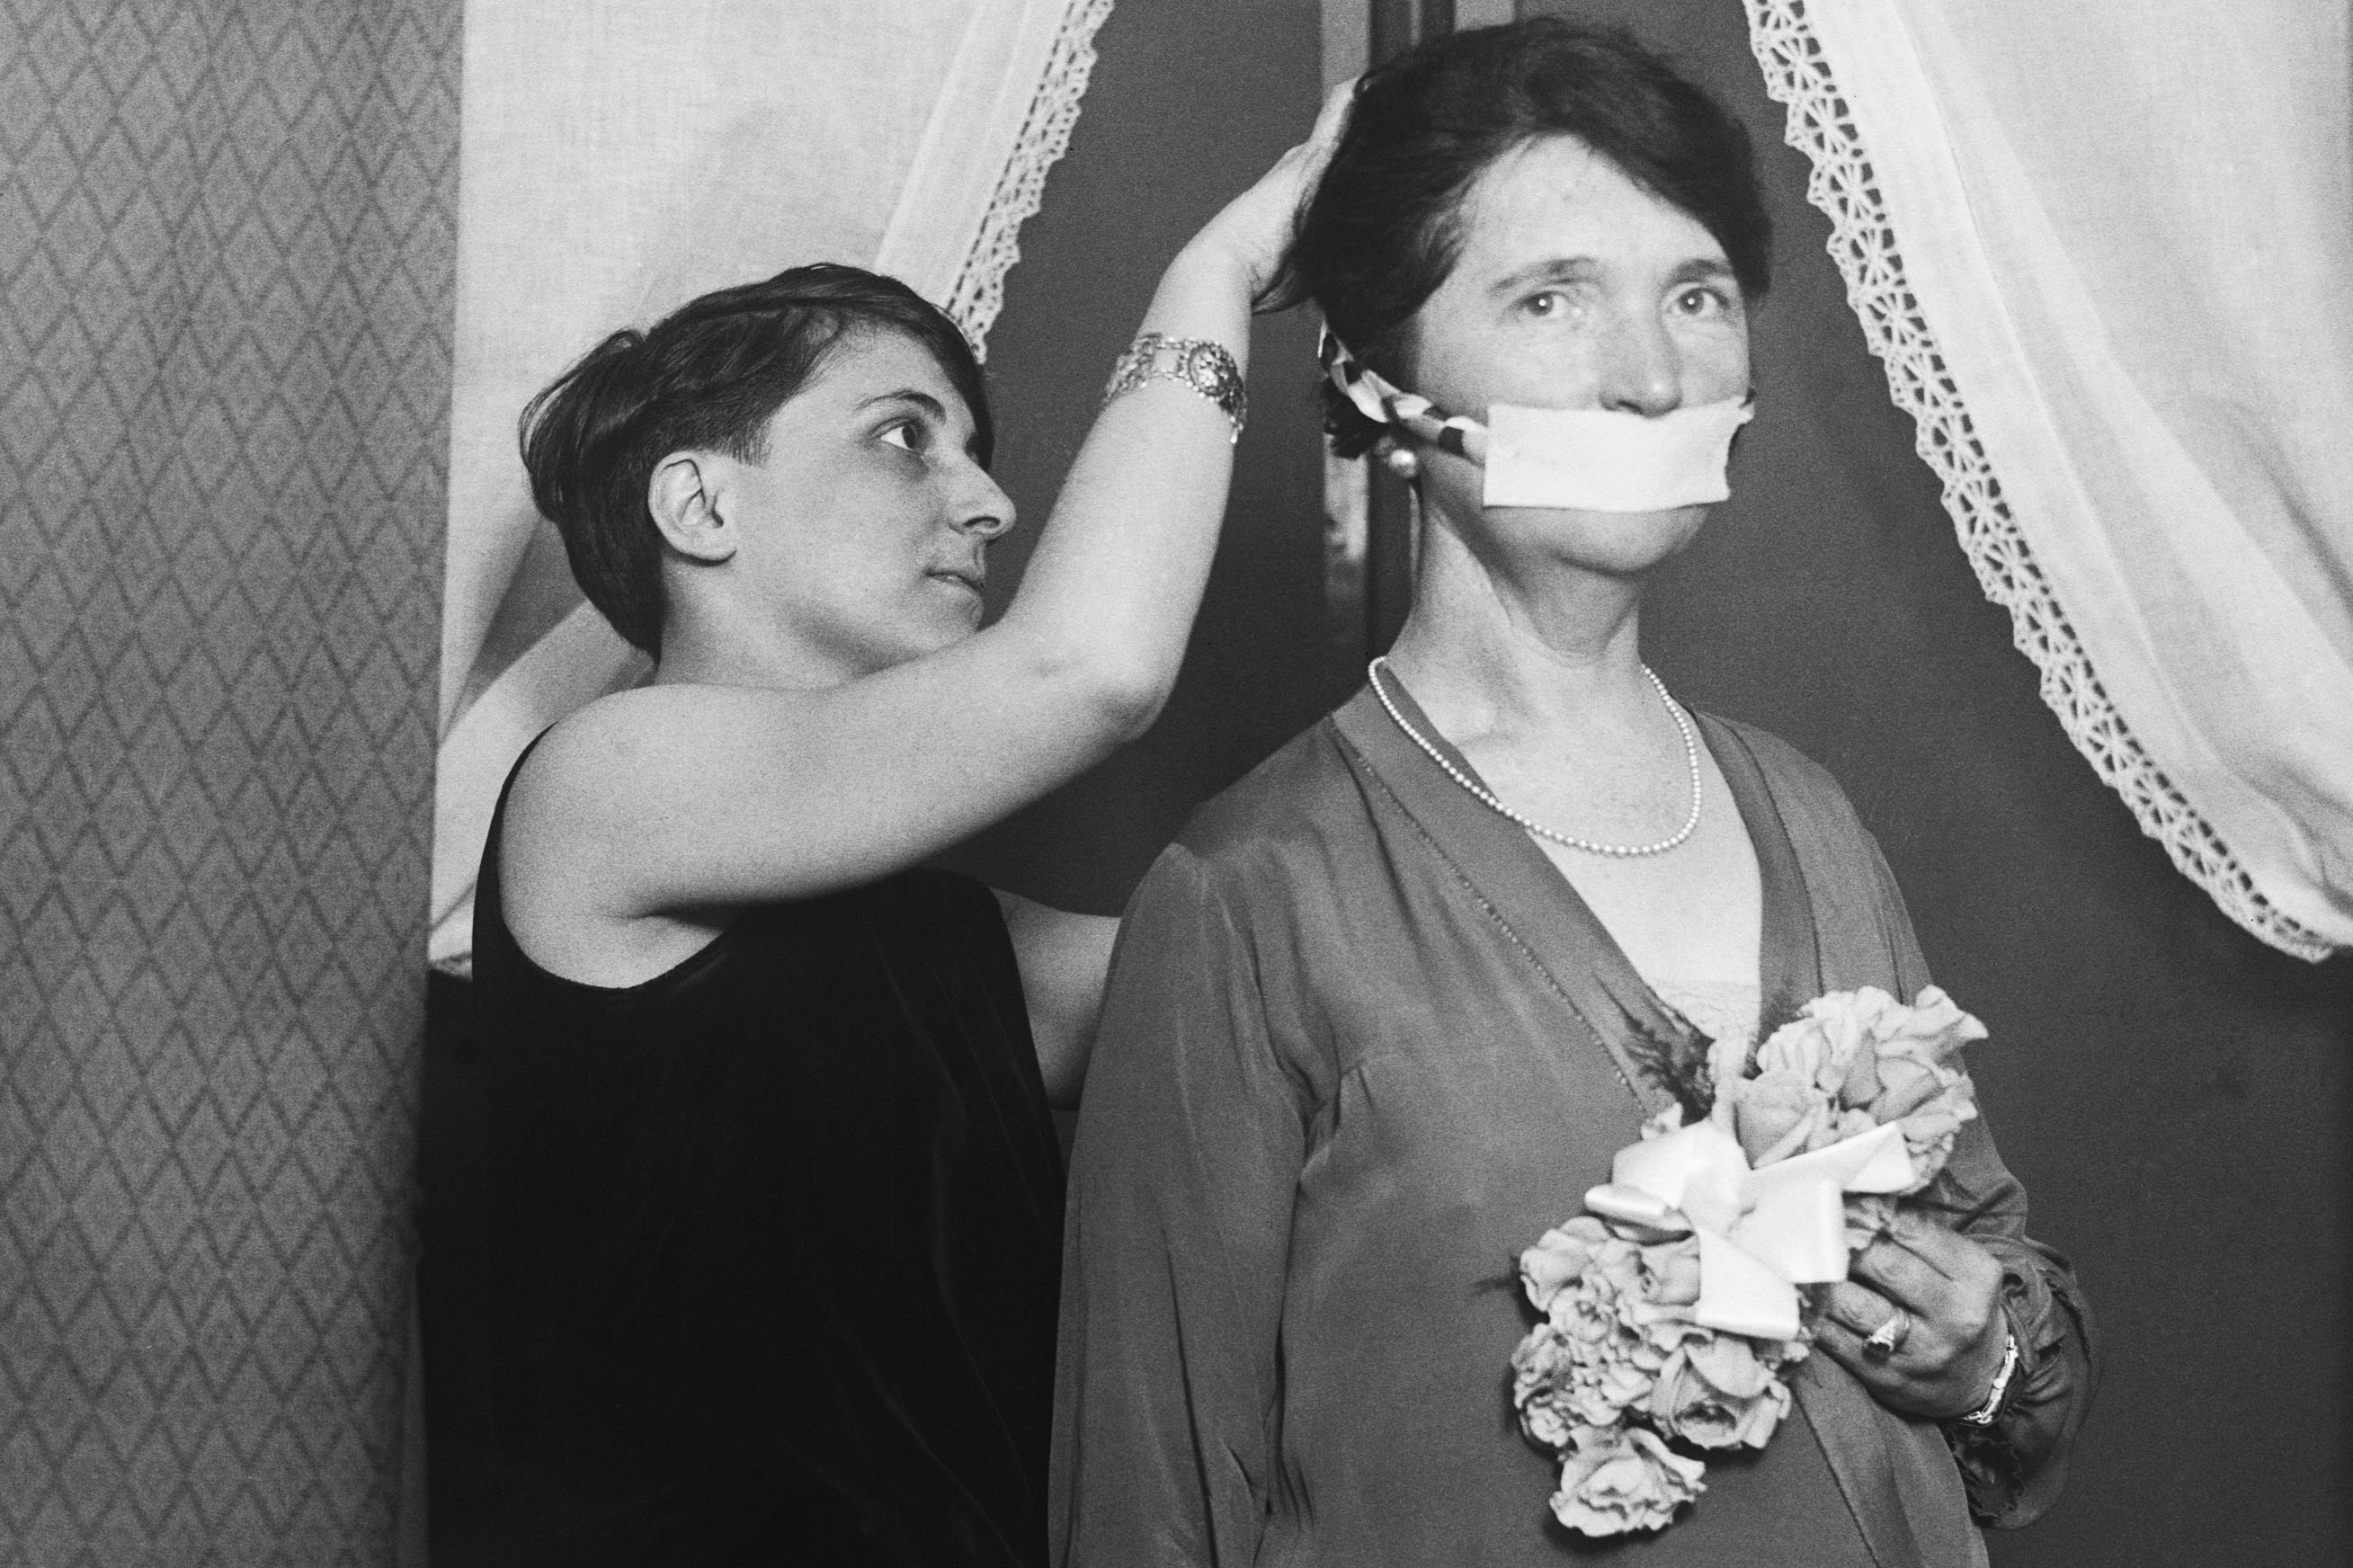 17 April 1929: Birth control advocate Margaret Sanger having her mouth covered in protest against not being allowed to talk about birth control in Boston, Massachusetts, in the United States. (Photograph by Bettmann/Contributor)